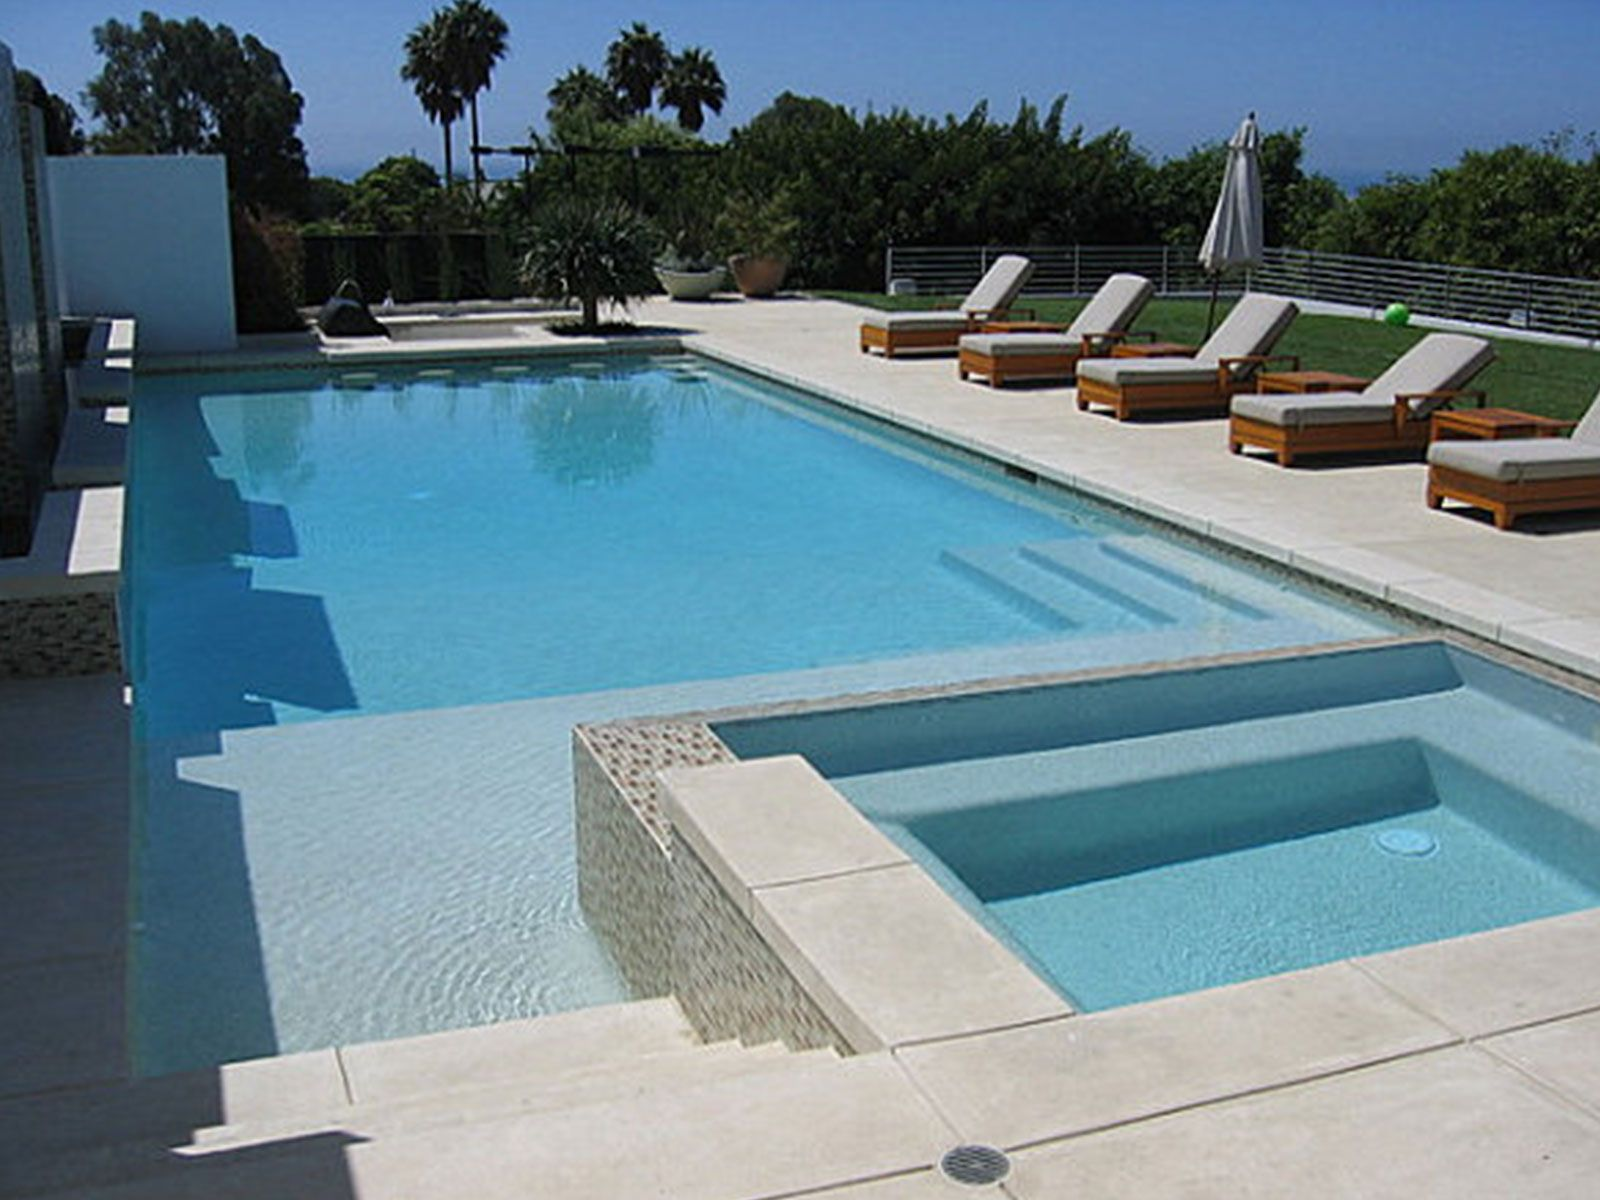 Simple swimming pool design image modern creative swimming for Garden pool plans